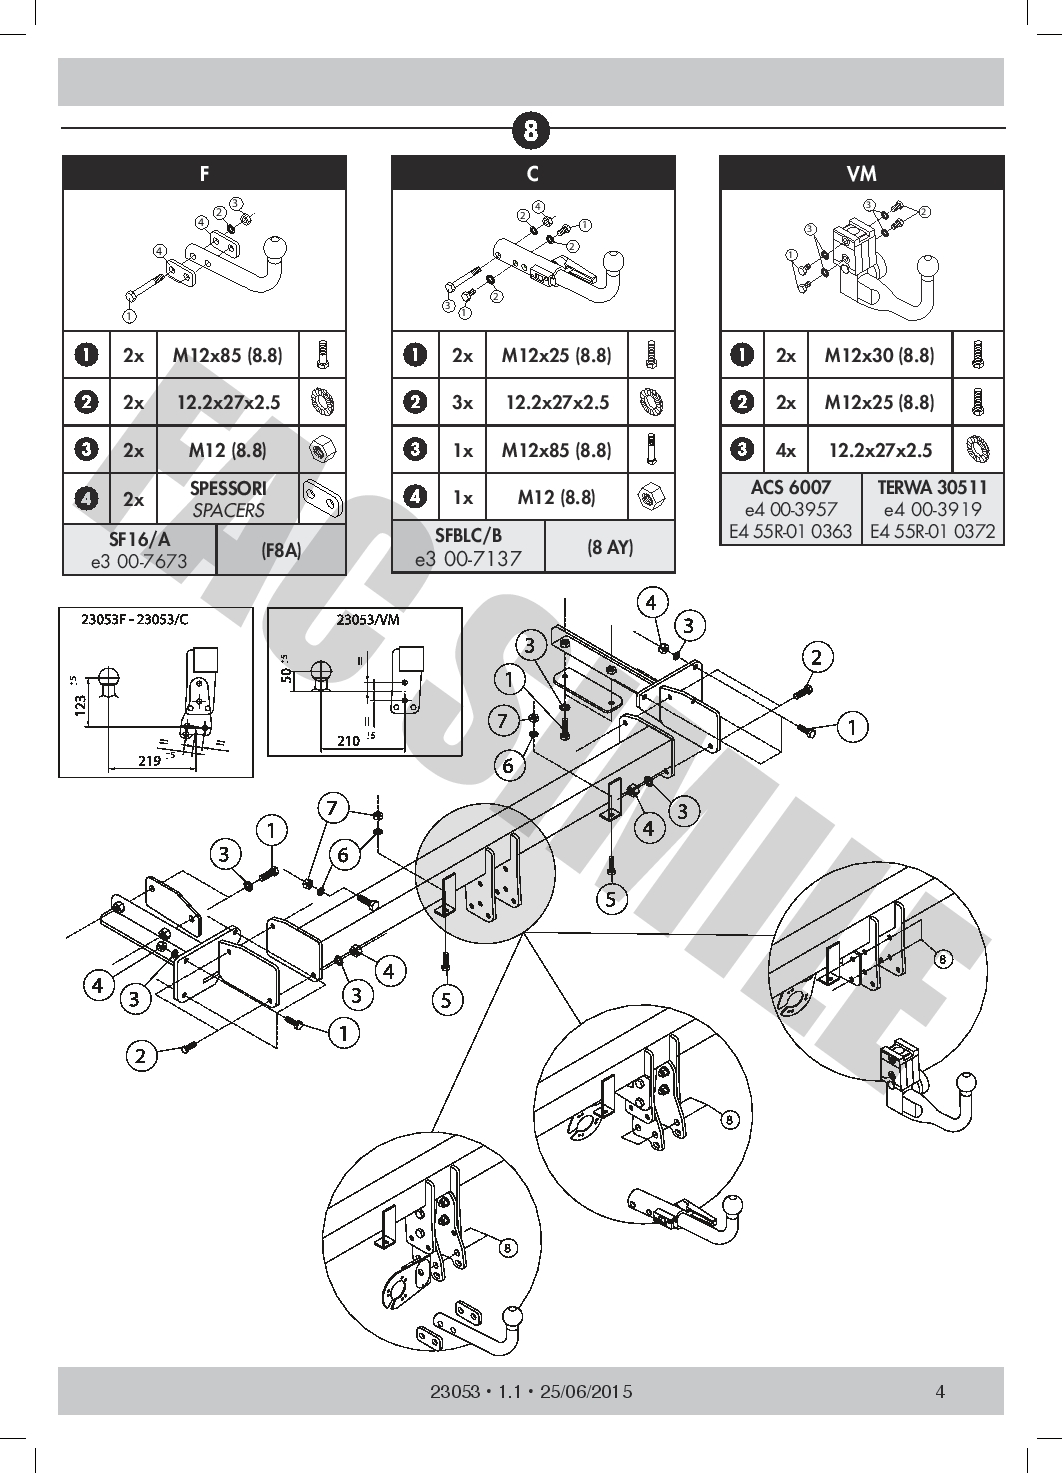 Detach Towbar 7p Wiring For Mercedes C Class Estate Excl Amg 01 07 Benz C240 Diagram